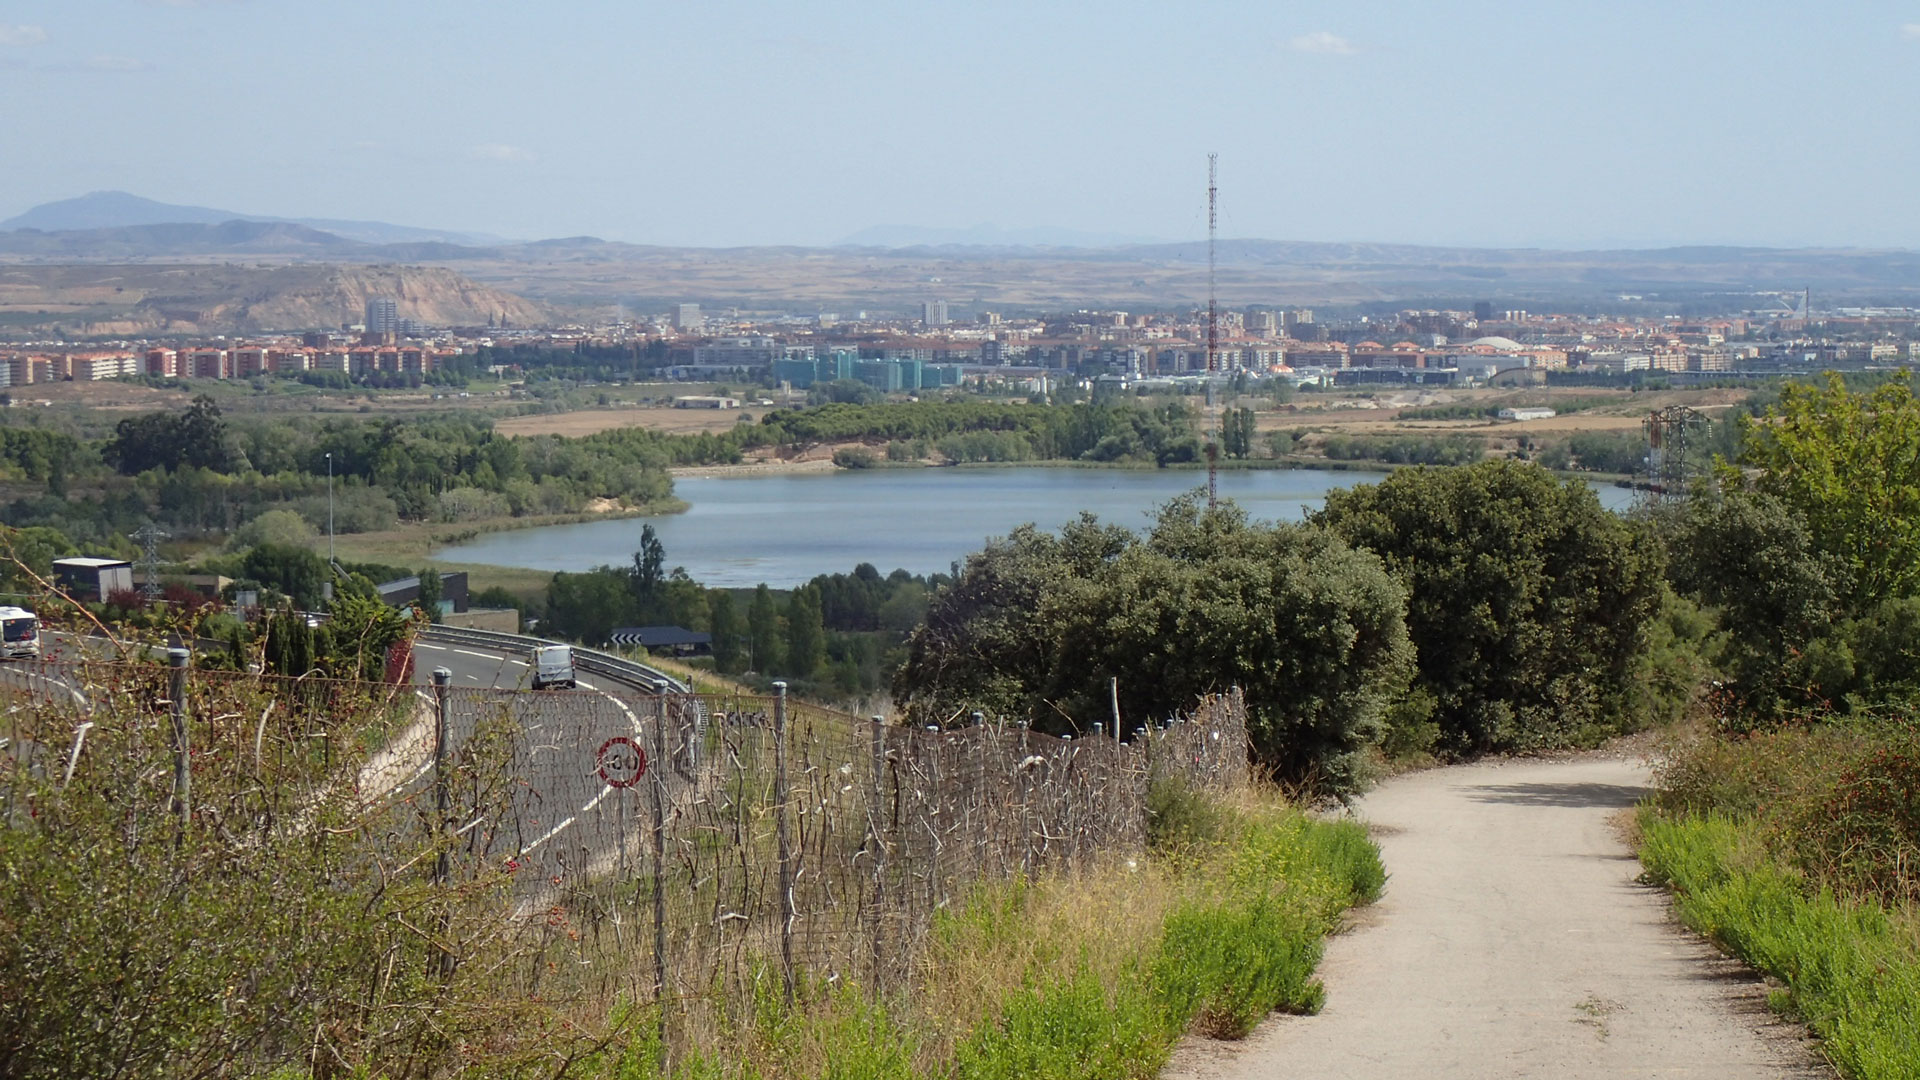 Climbing out of Logrono